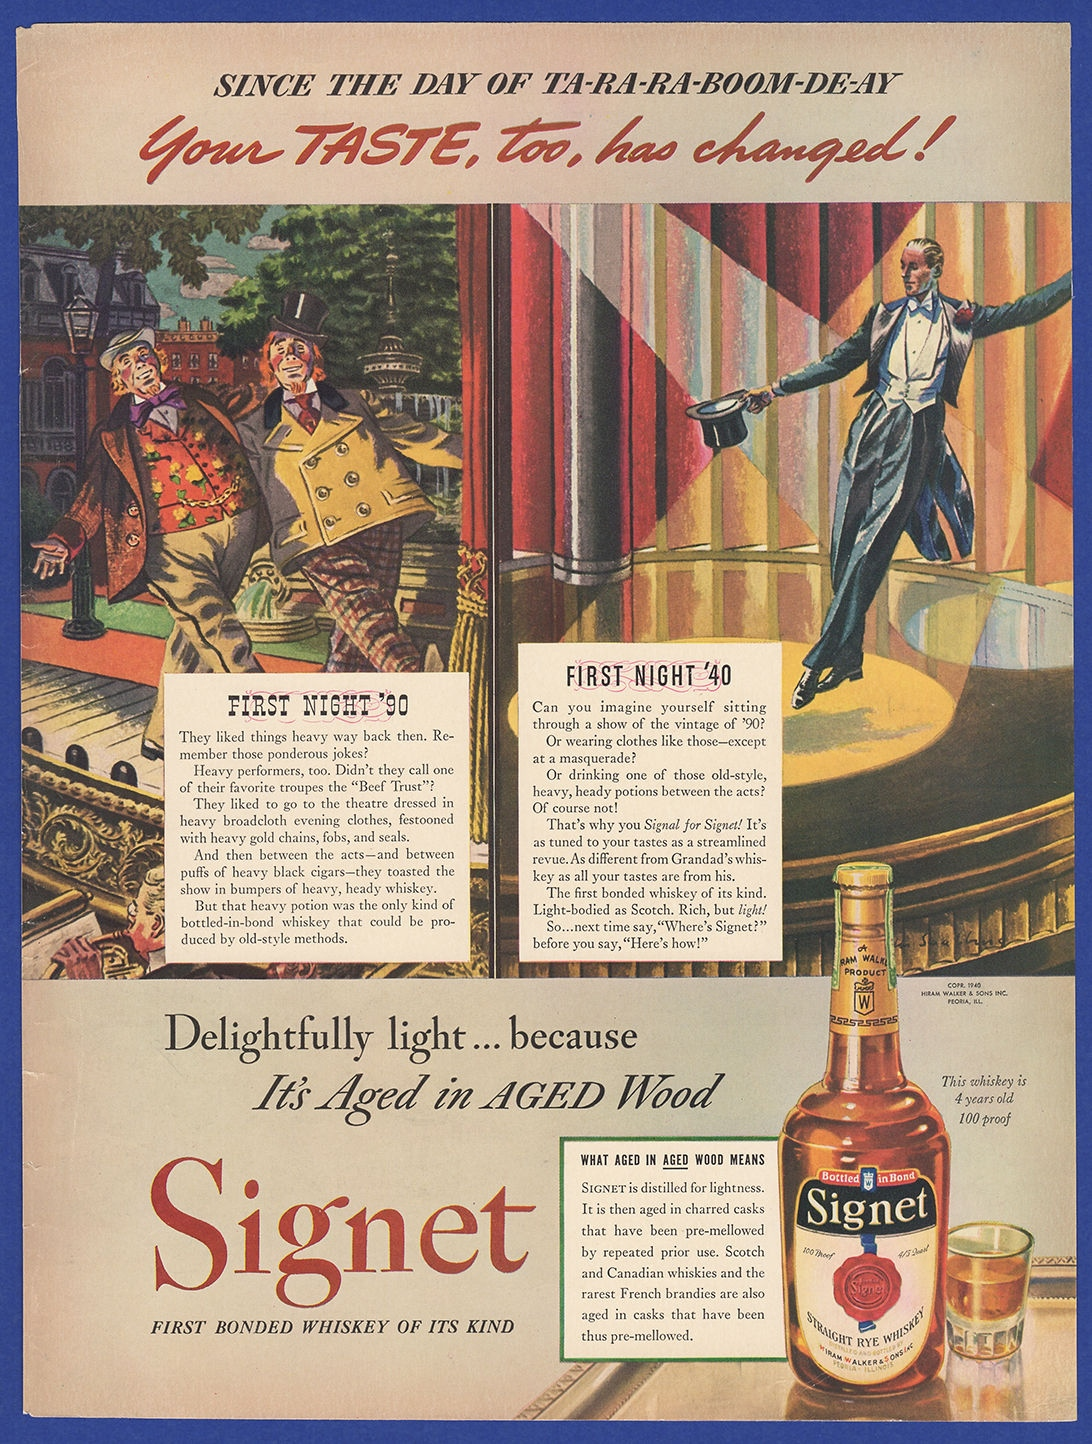 Details about Vintage 1940 SIGNET Bonded Rye Whiskey Alcohol RARE 1940's  Art Deco Print Ad